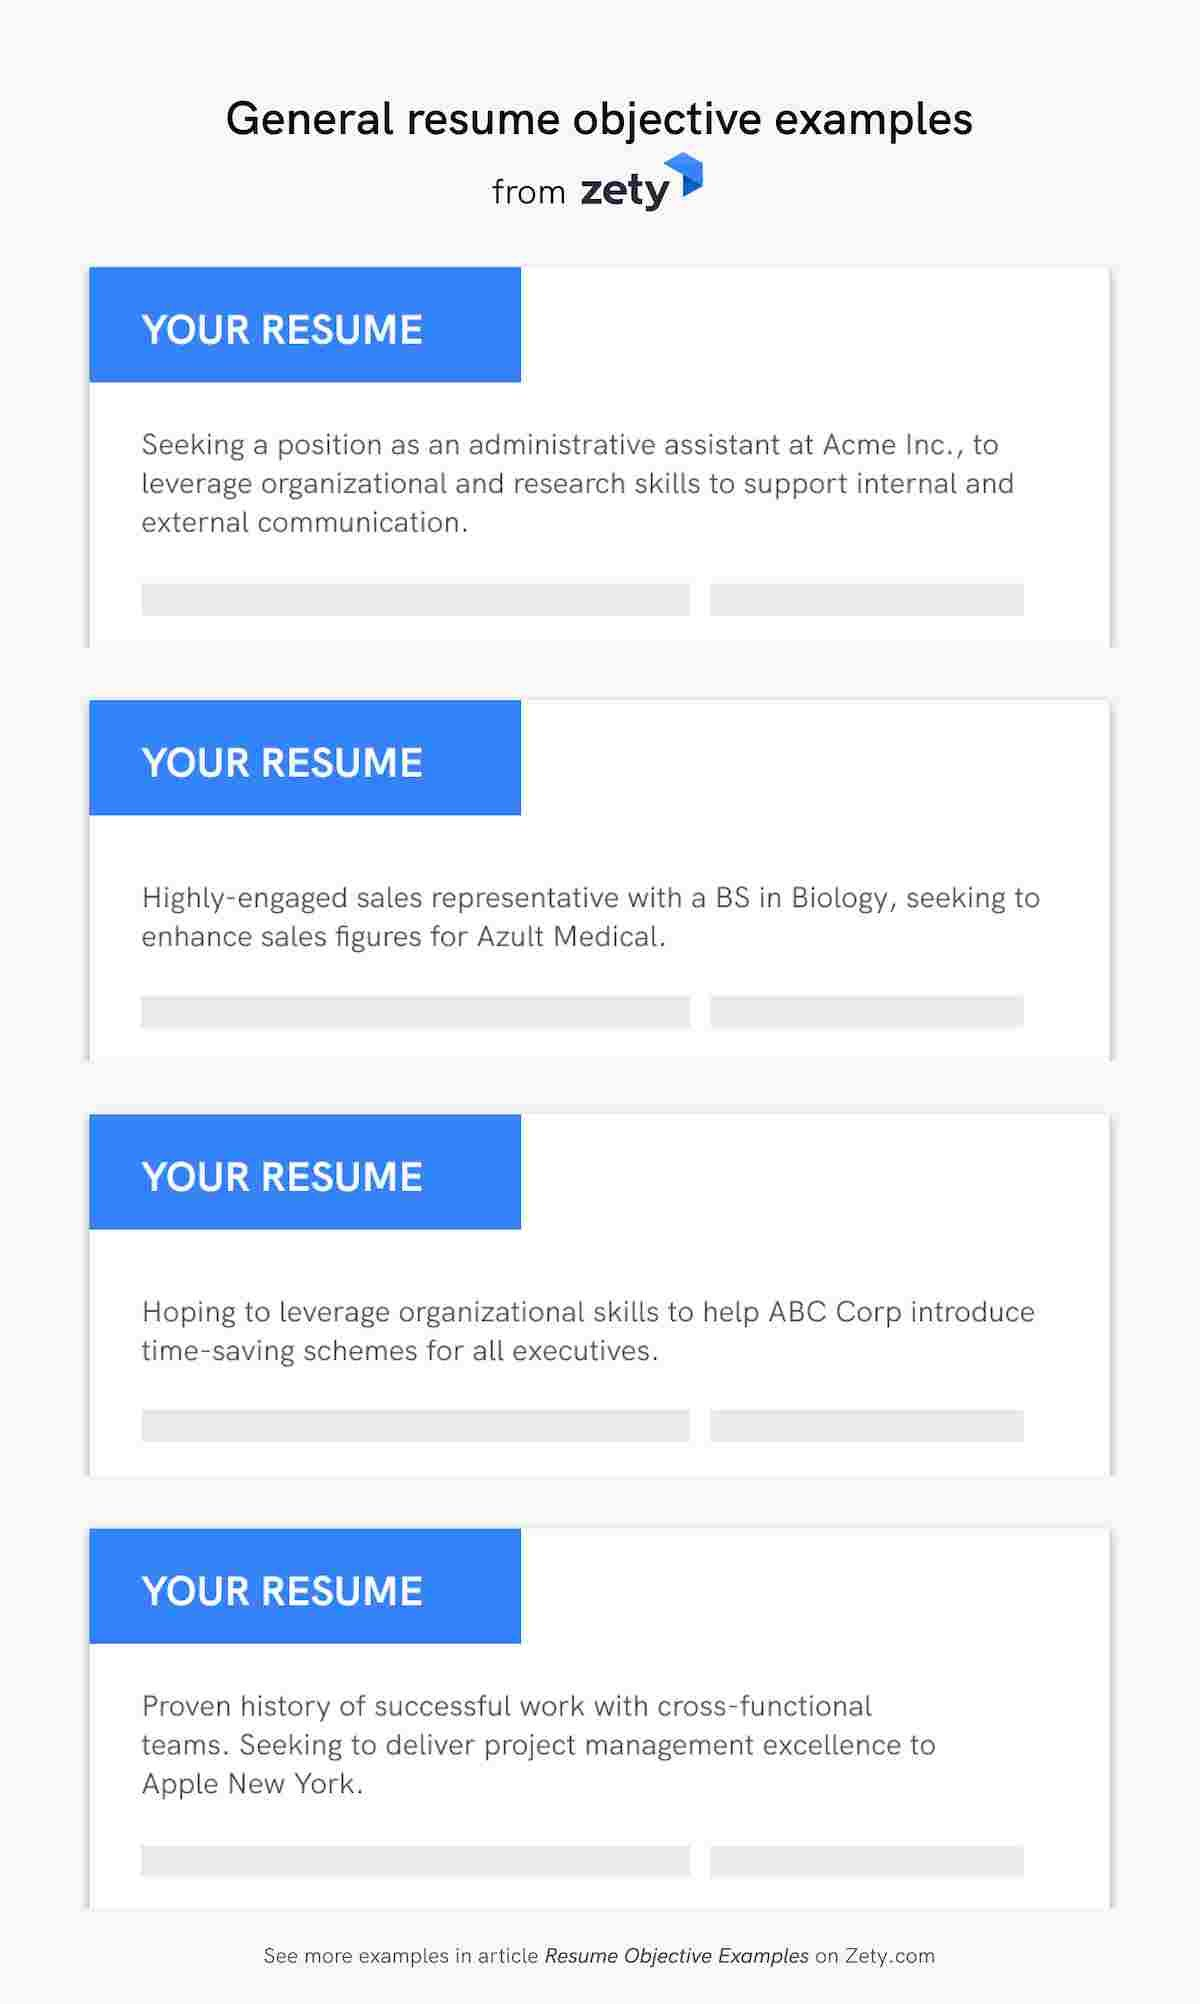 resume objective examples career objectives for all jobs strong statements general Resume Strong Resume Objective Statements